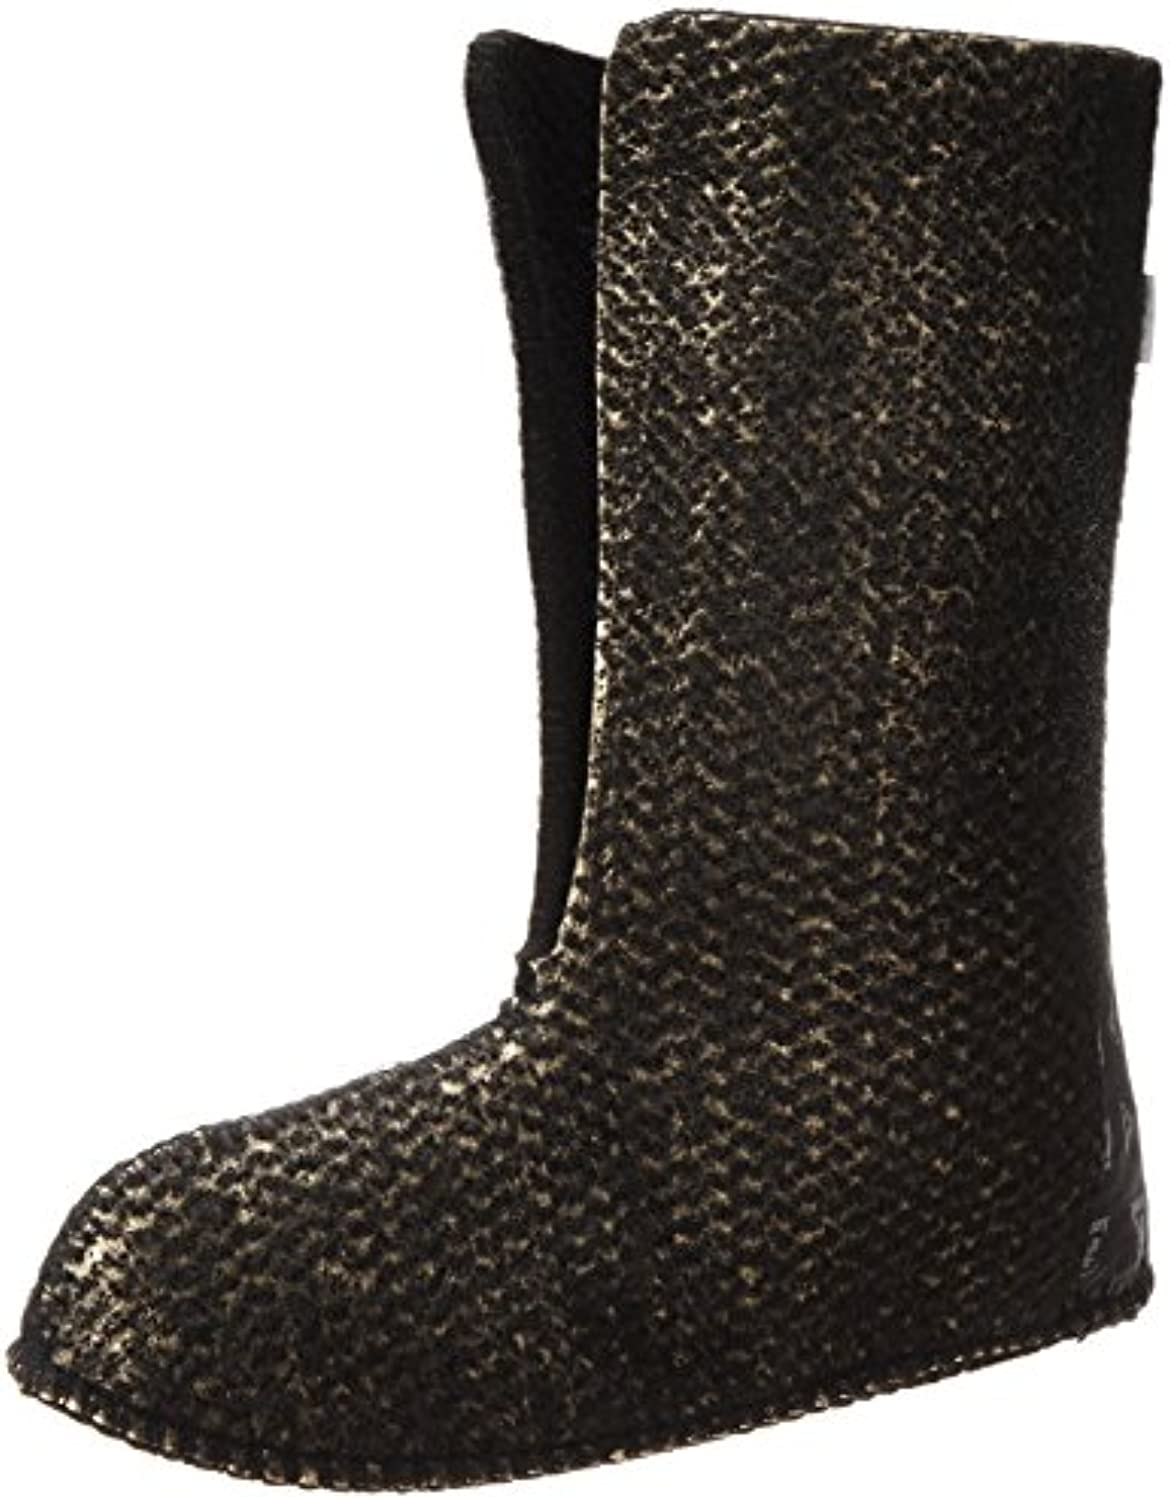 Kamik Footwear Kids Liner23 Insulated Boot Toddler/Little Kid/Big Kid Black 9 M US Toddler